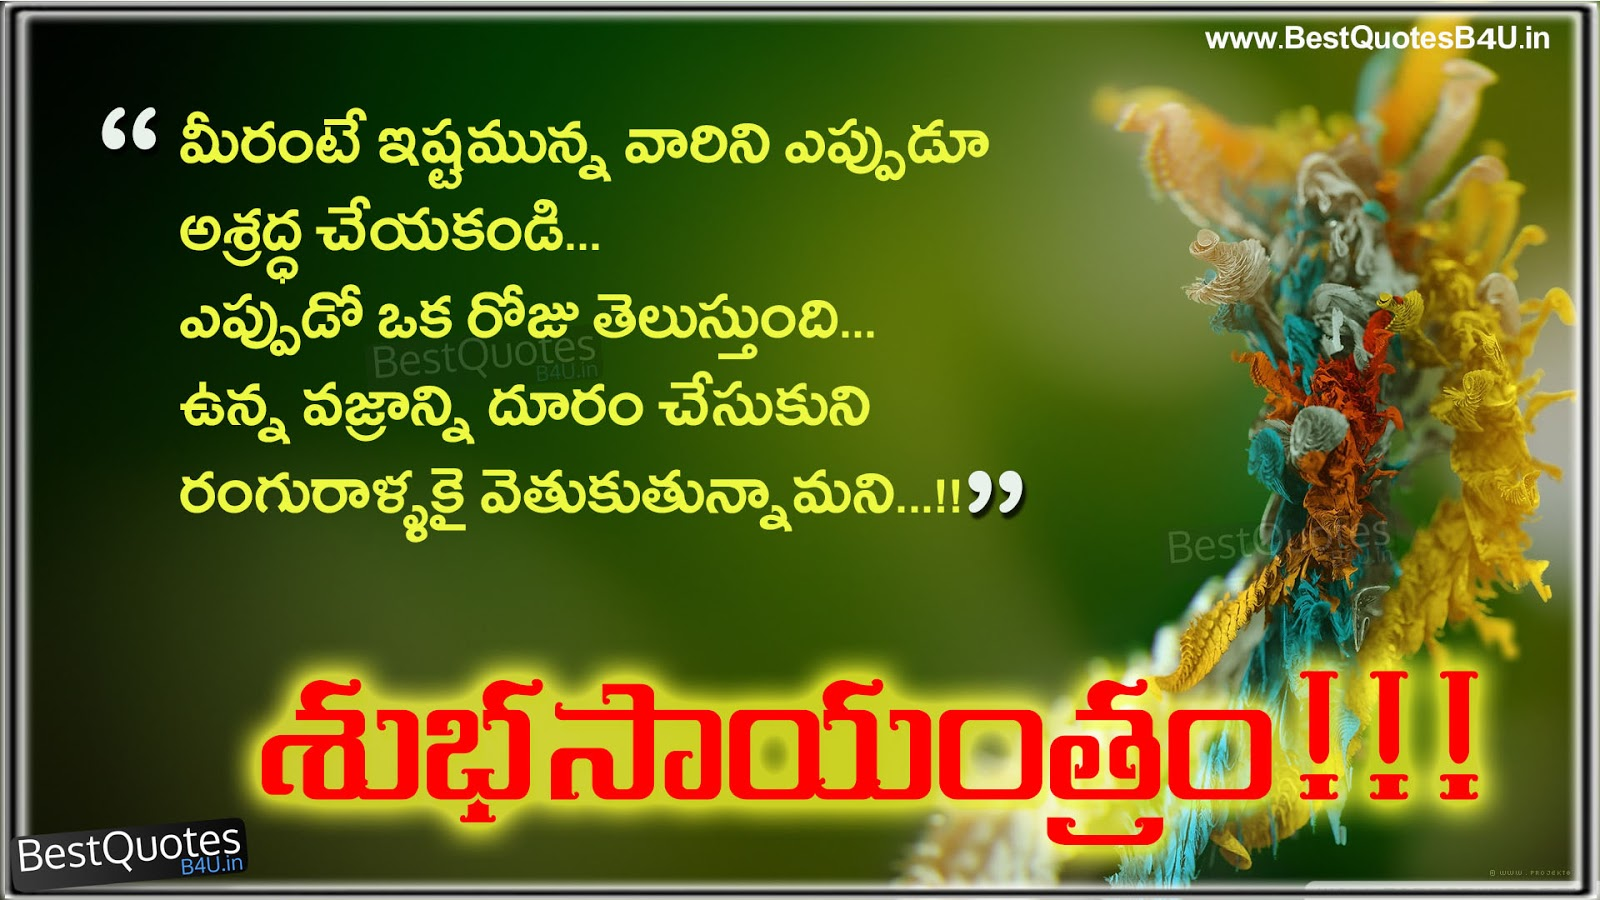 Lovely Beautiful Good Night Images In Telugu Quoteambition